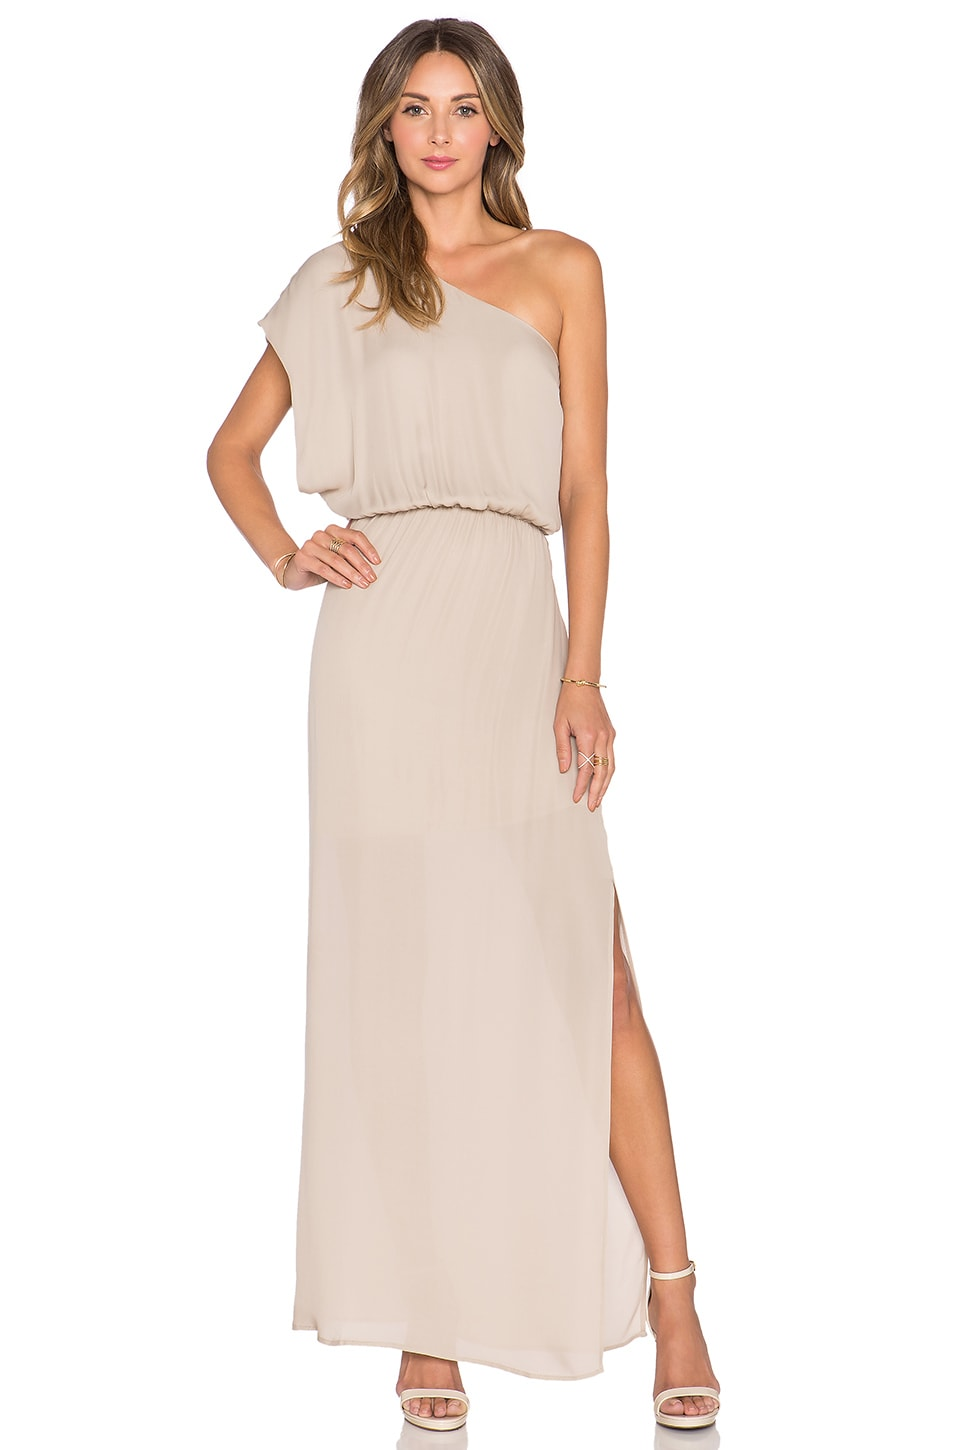 Rory Beca MAID by Yifat Oren Emma Gown in Nude